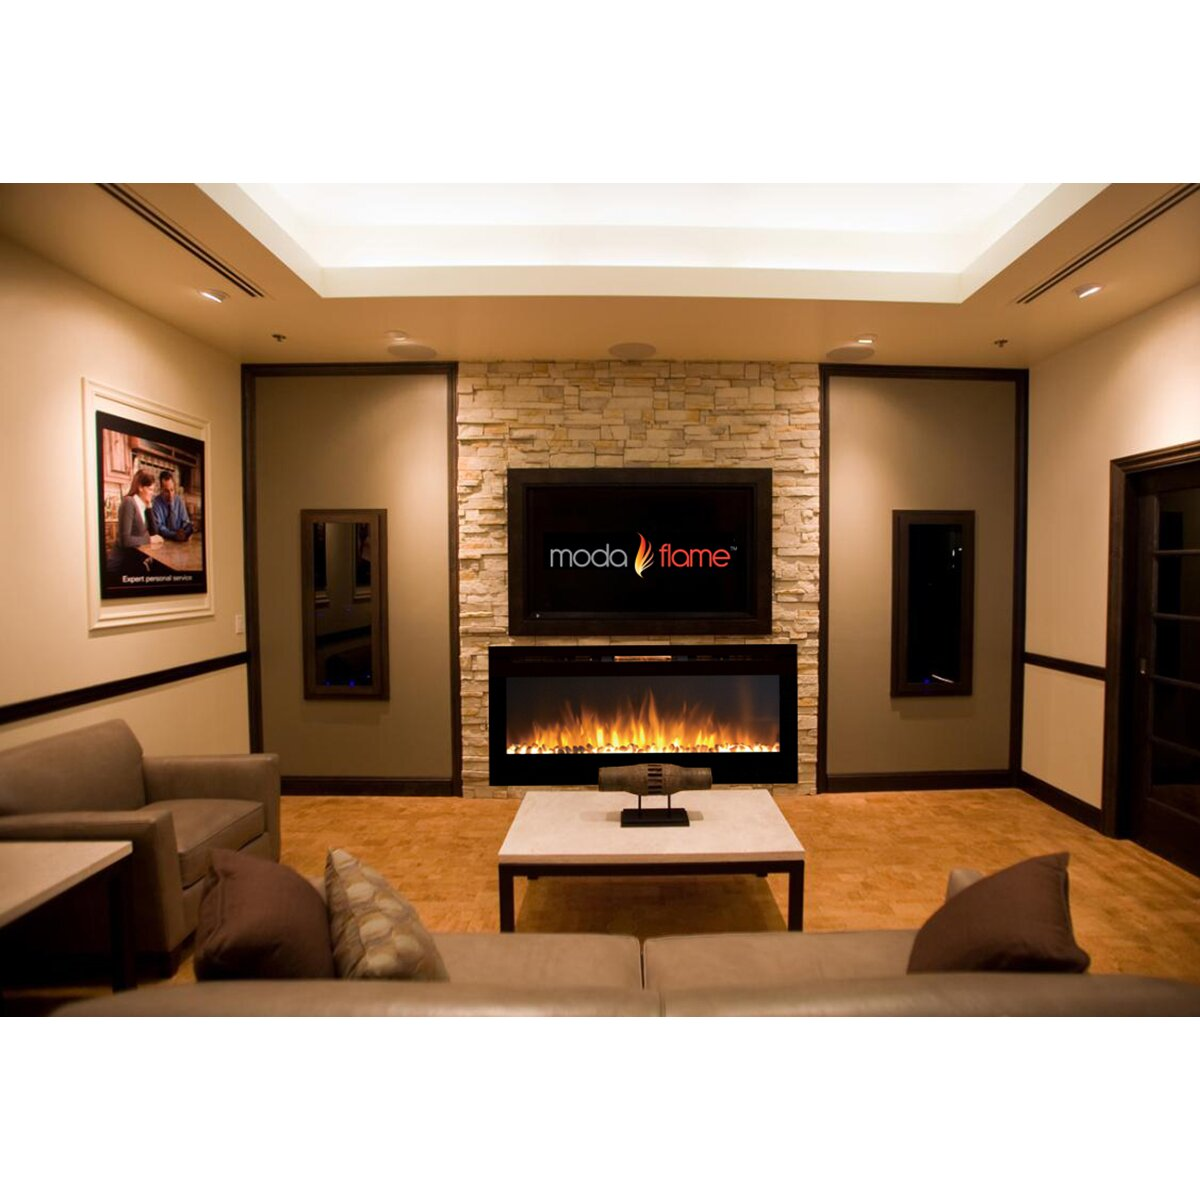 Moda Flame Pro Cynergy Pebble Stone Built In Wall Mount Electric Fireplace Reviews Wayfair